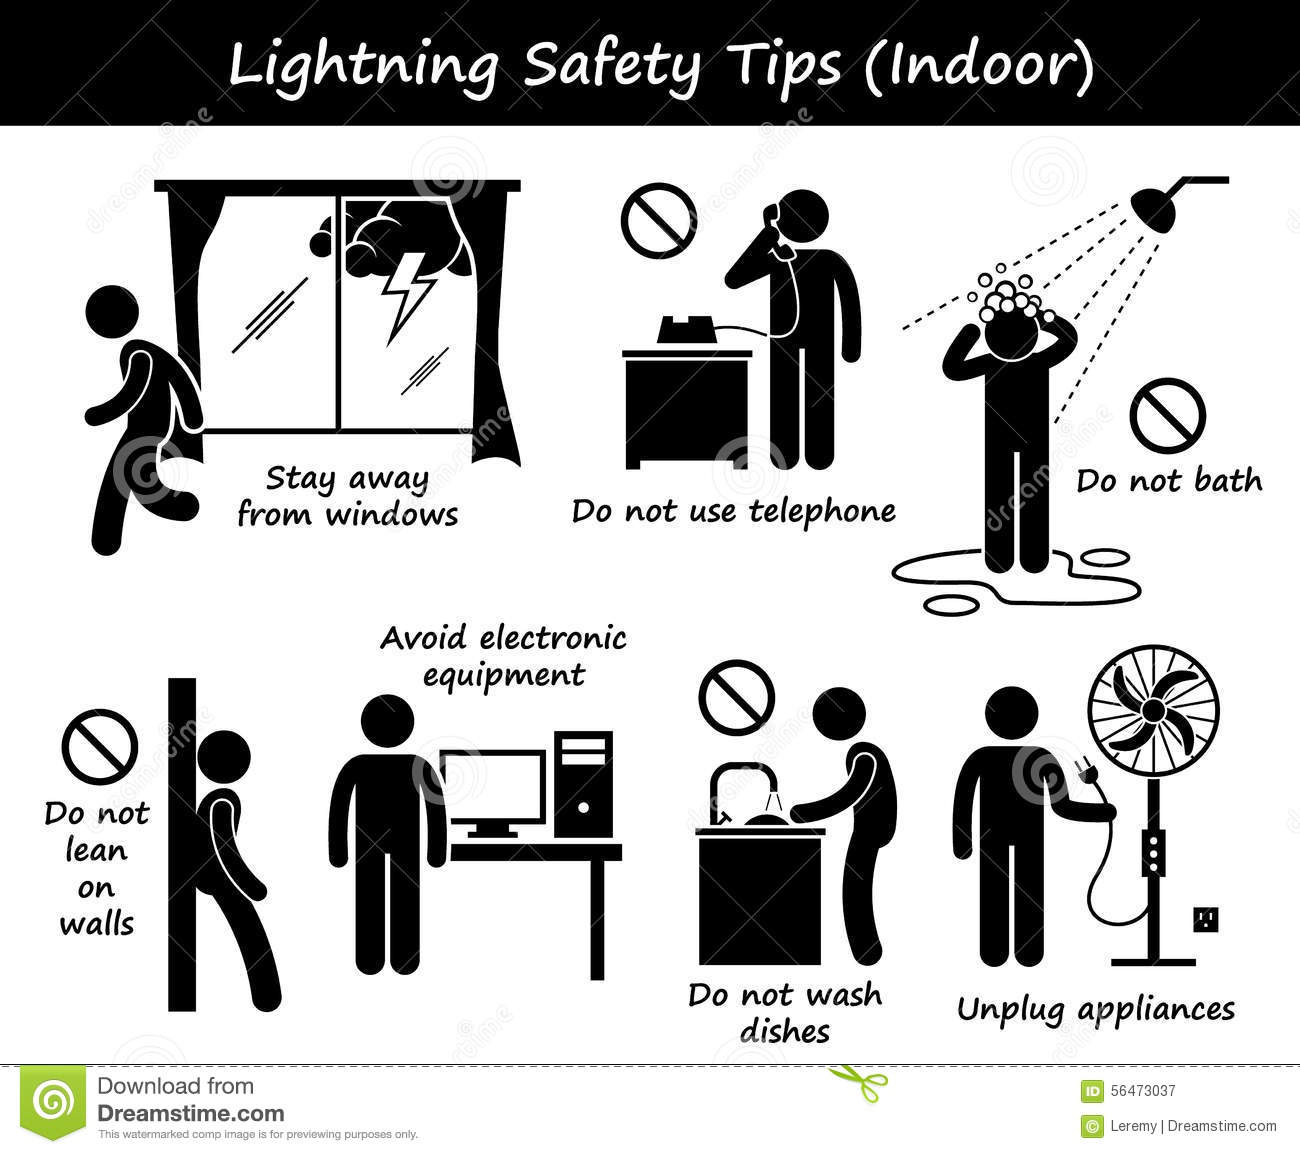 Lightning Thunder Indoor Safety Tips Clipart Stock Vector